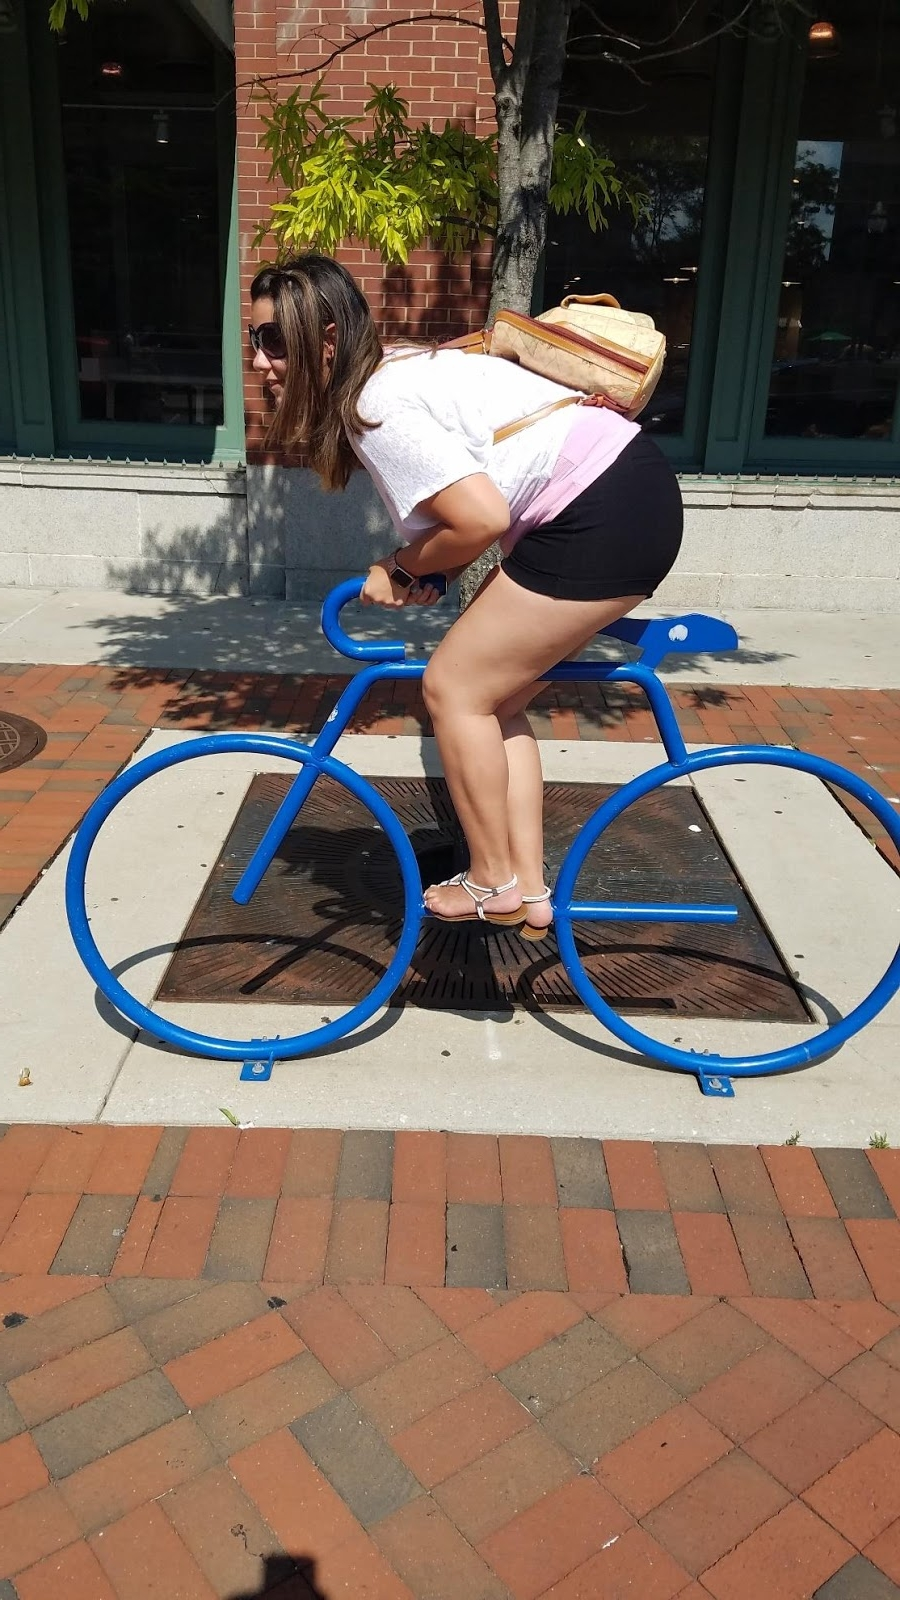 After leaving the aquarium, we took a look at a bike rack that Miranda thought was a real bike.